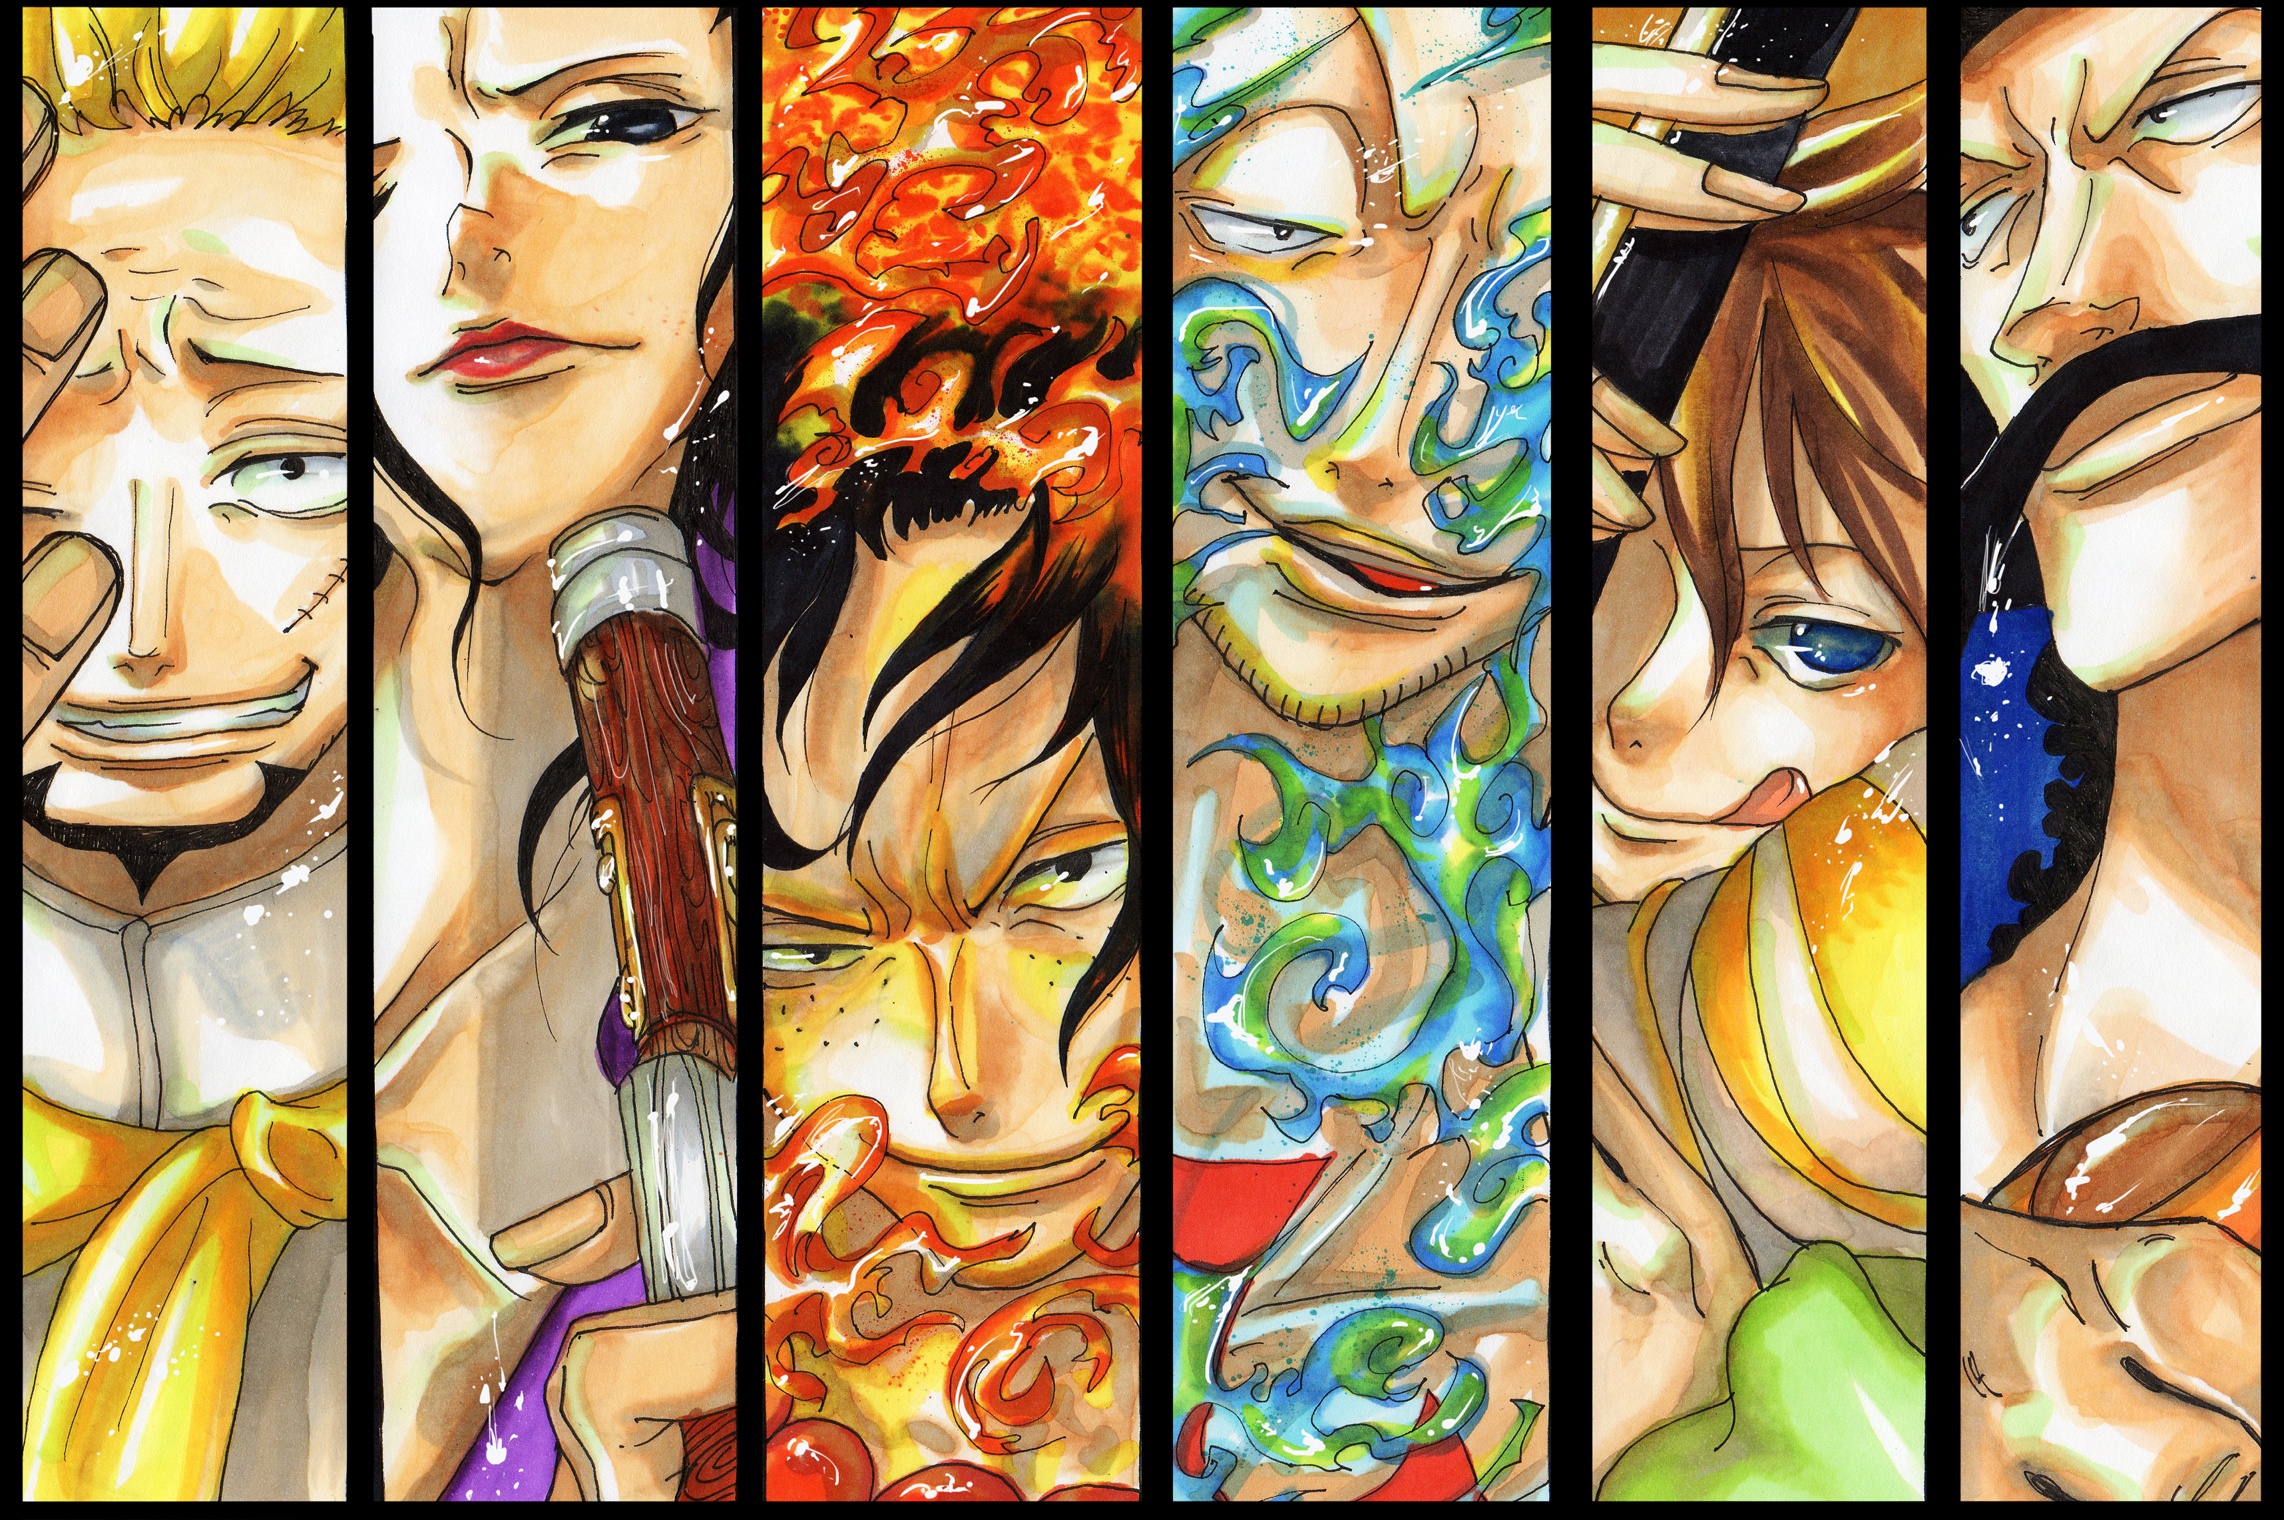 One Piece Whitebeard Pirates Wallpaper 2284x1520 152894